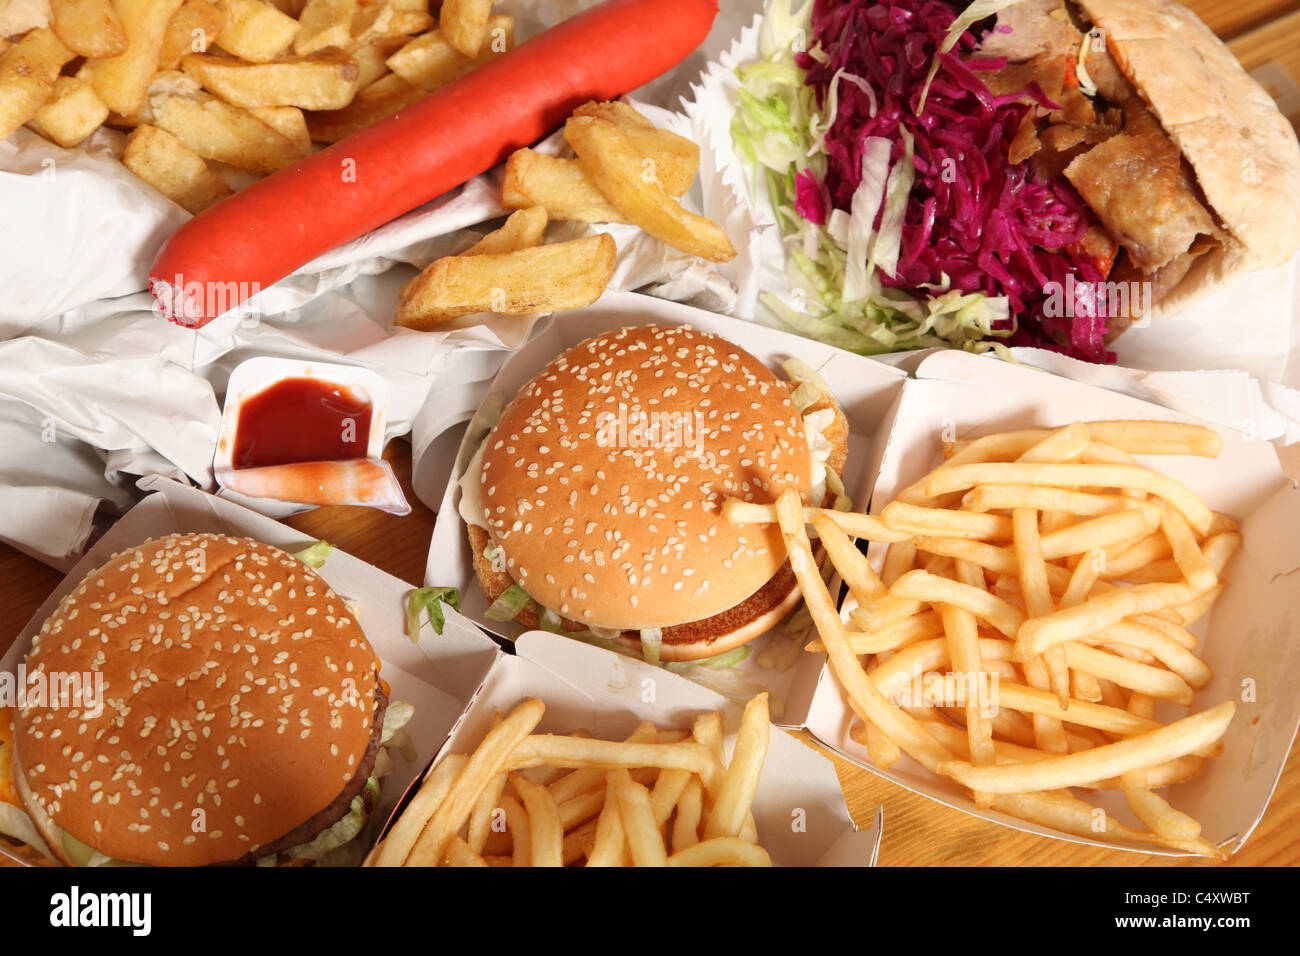 Hamburgers, kebab, chips and other unhealthy fatty fried foods. - Stock Image